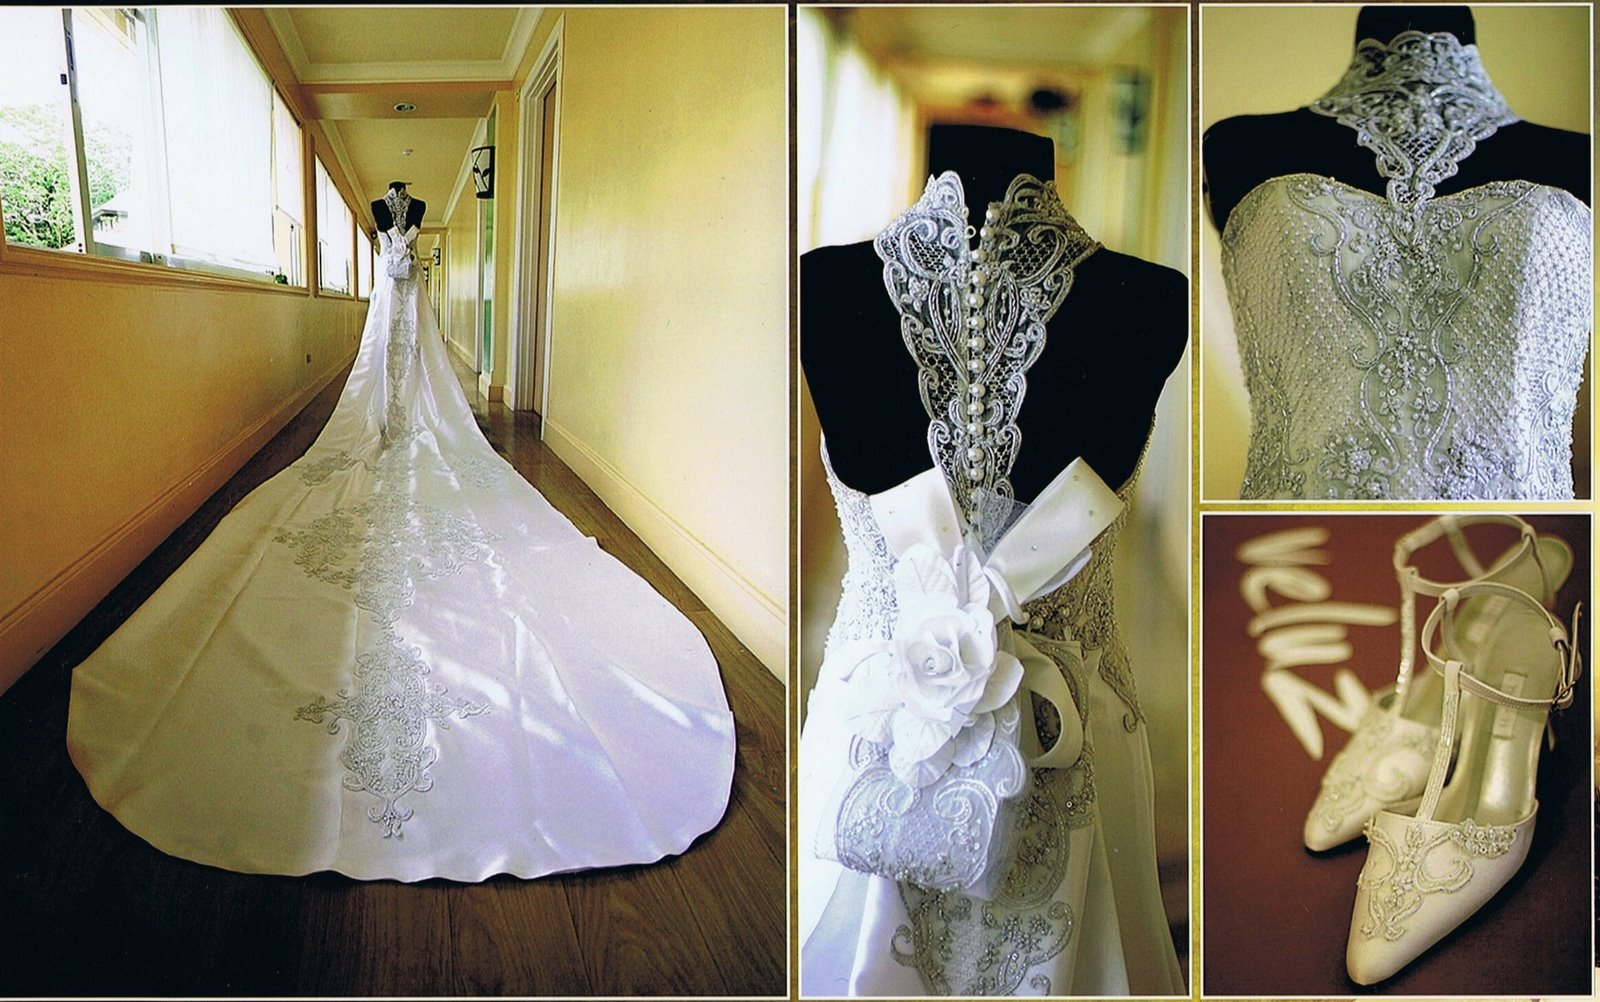 the wedding enthusiast: Wedding gown worship